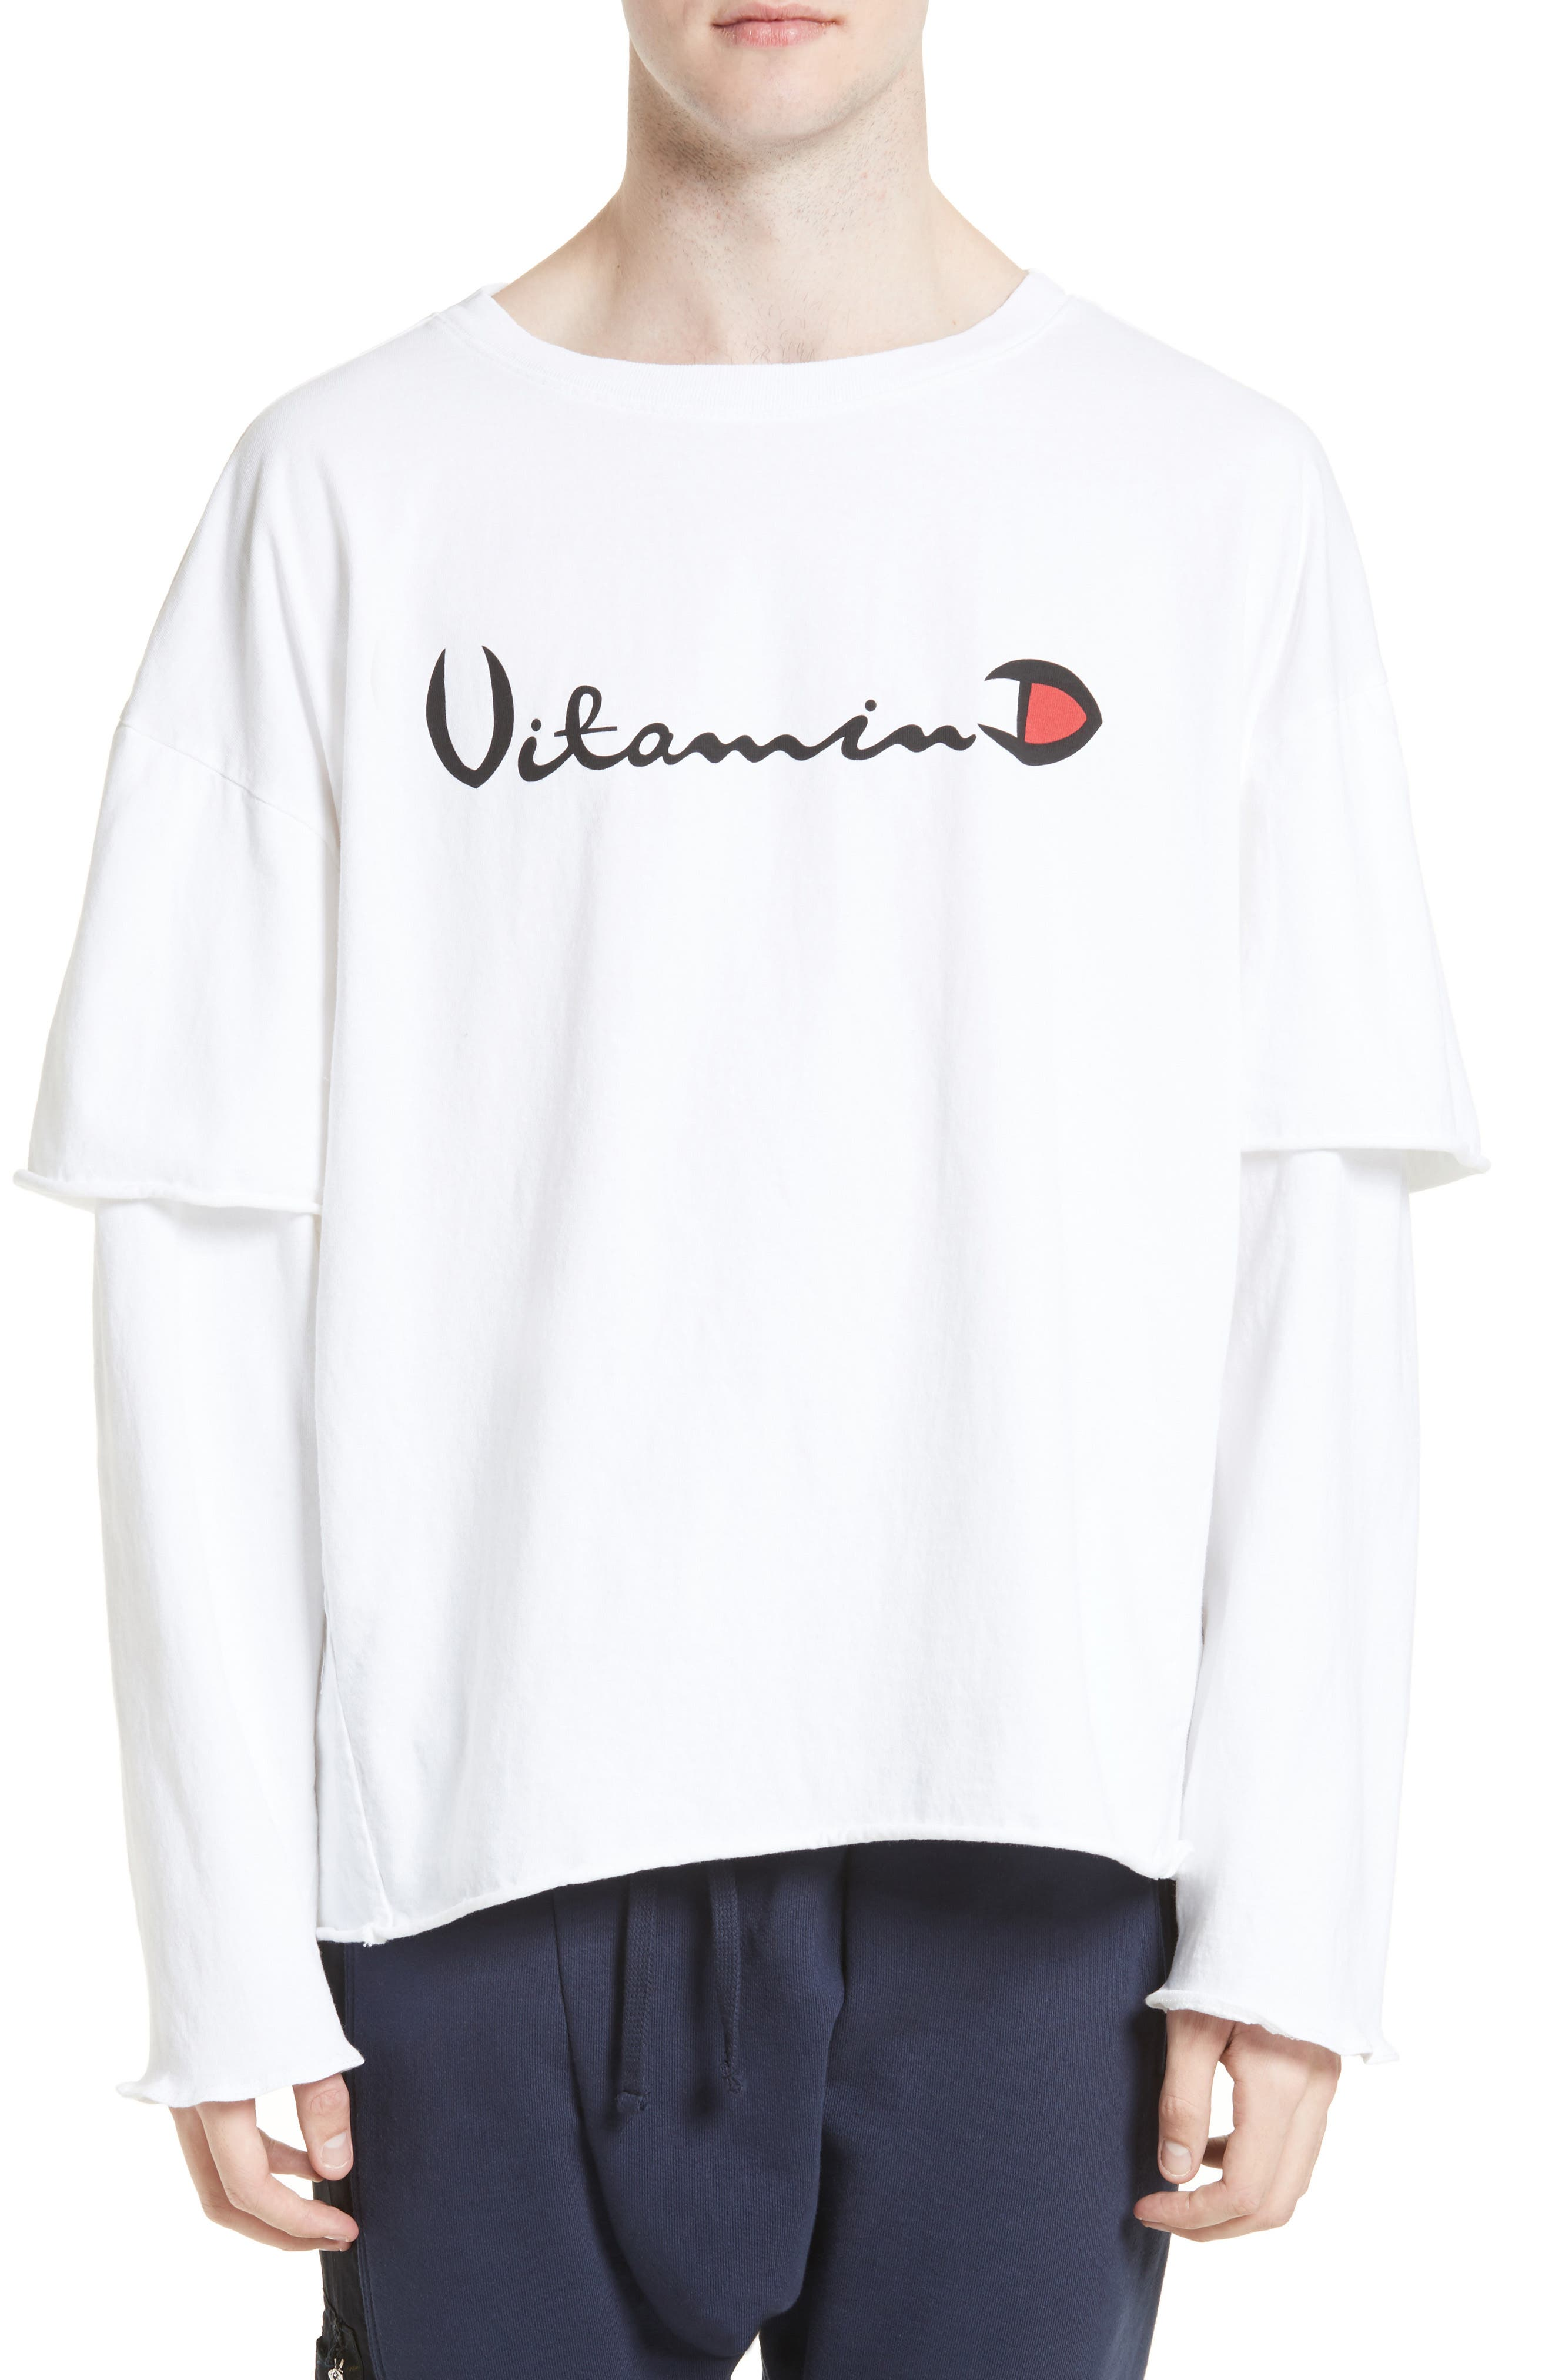 Main Image - Drifter Filius Vitamin D Graphic T-Shirt